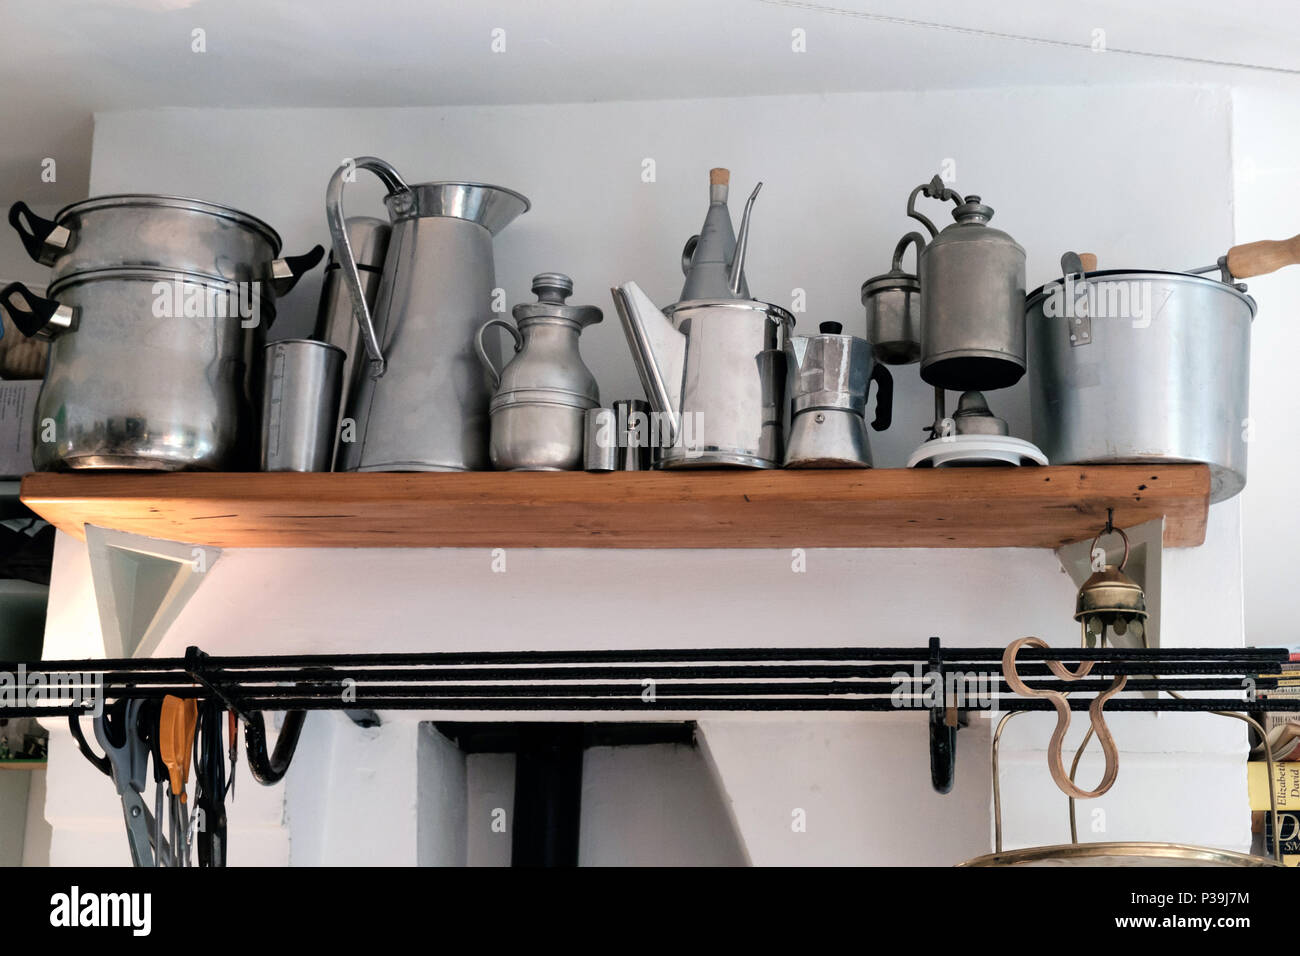 Open kitchen shelf with aluminium & stainless steel cooking objects including pots and jugs. In Adaptable House, 6 Doughty Mews, Bloomsbury, London. Stock Photo